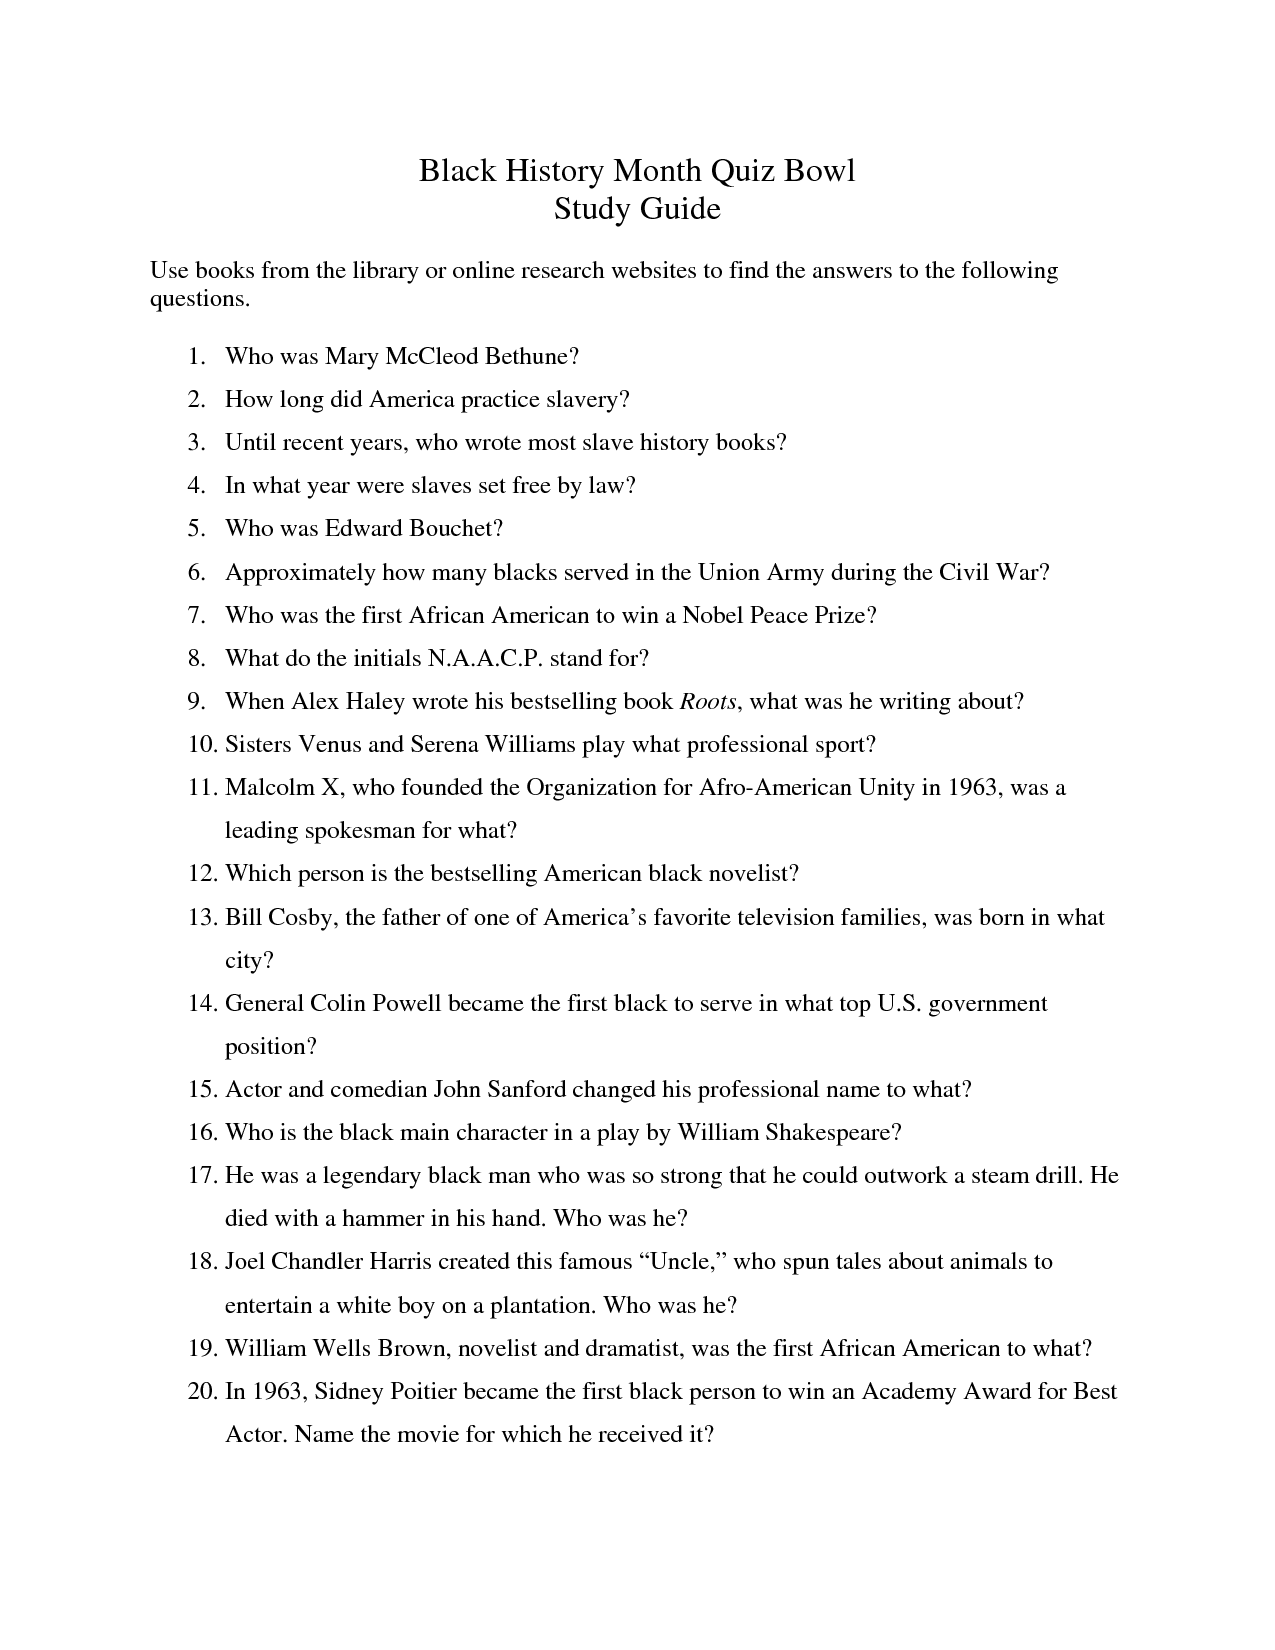 Are Cats Or Dogs Better Black History Month Trivia Questions